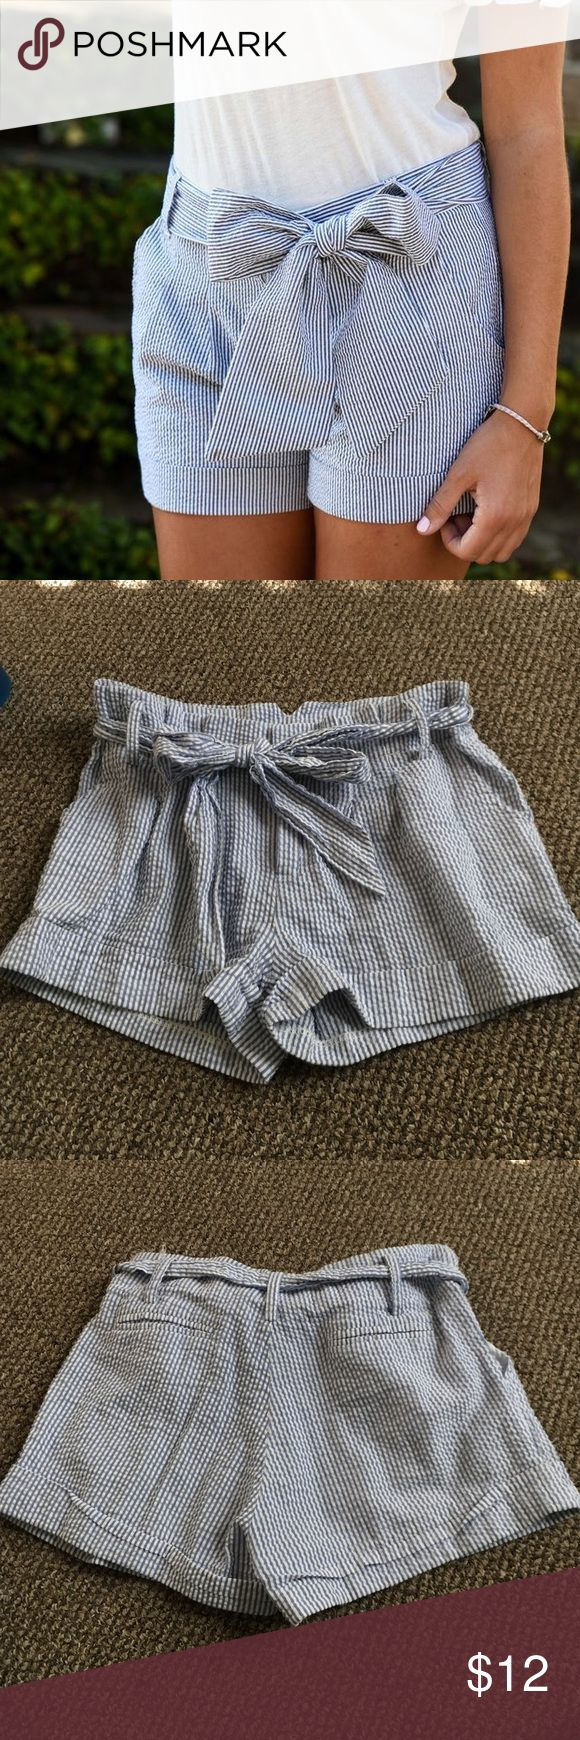 Annabella Seersucker Shorts- Size 2 Light, summery, comfy shorts!! Run slightly big, I'm typically a 4, but these fit me. Great condition. Annabella Shorts